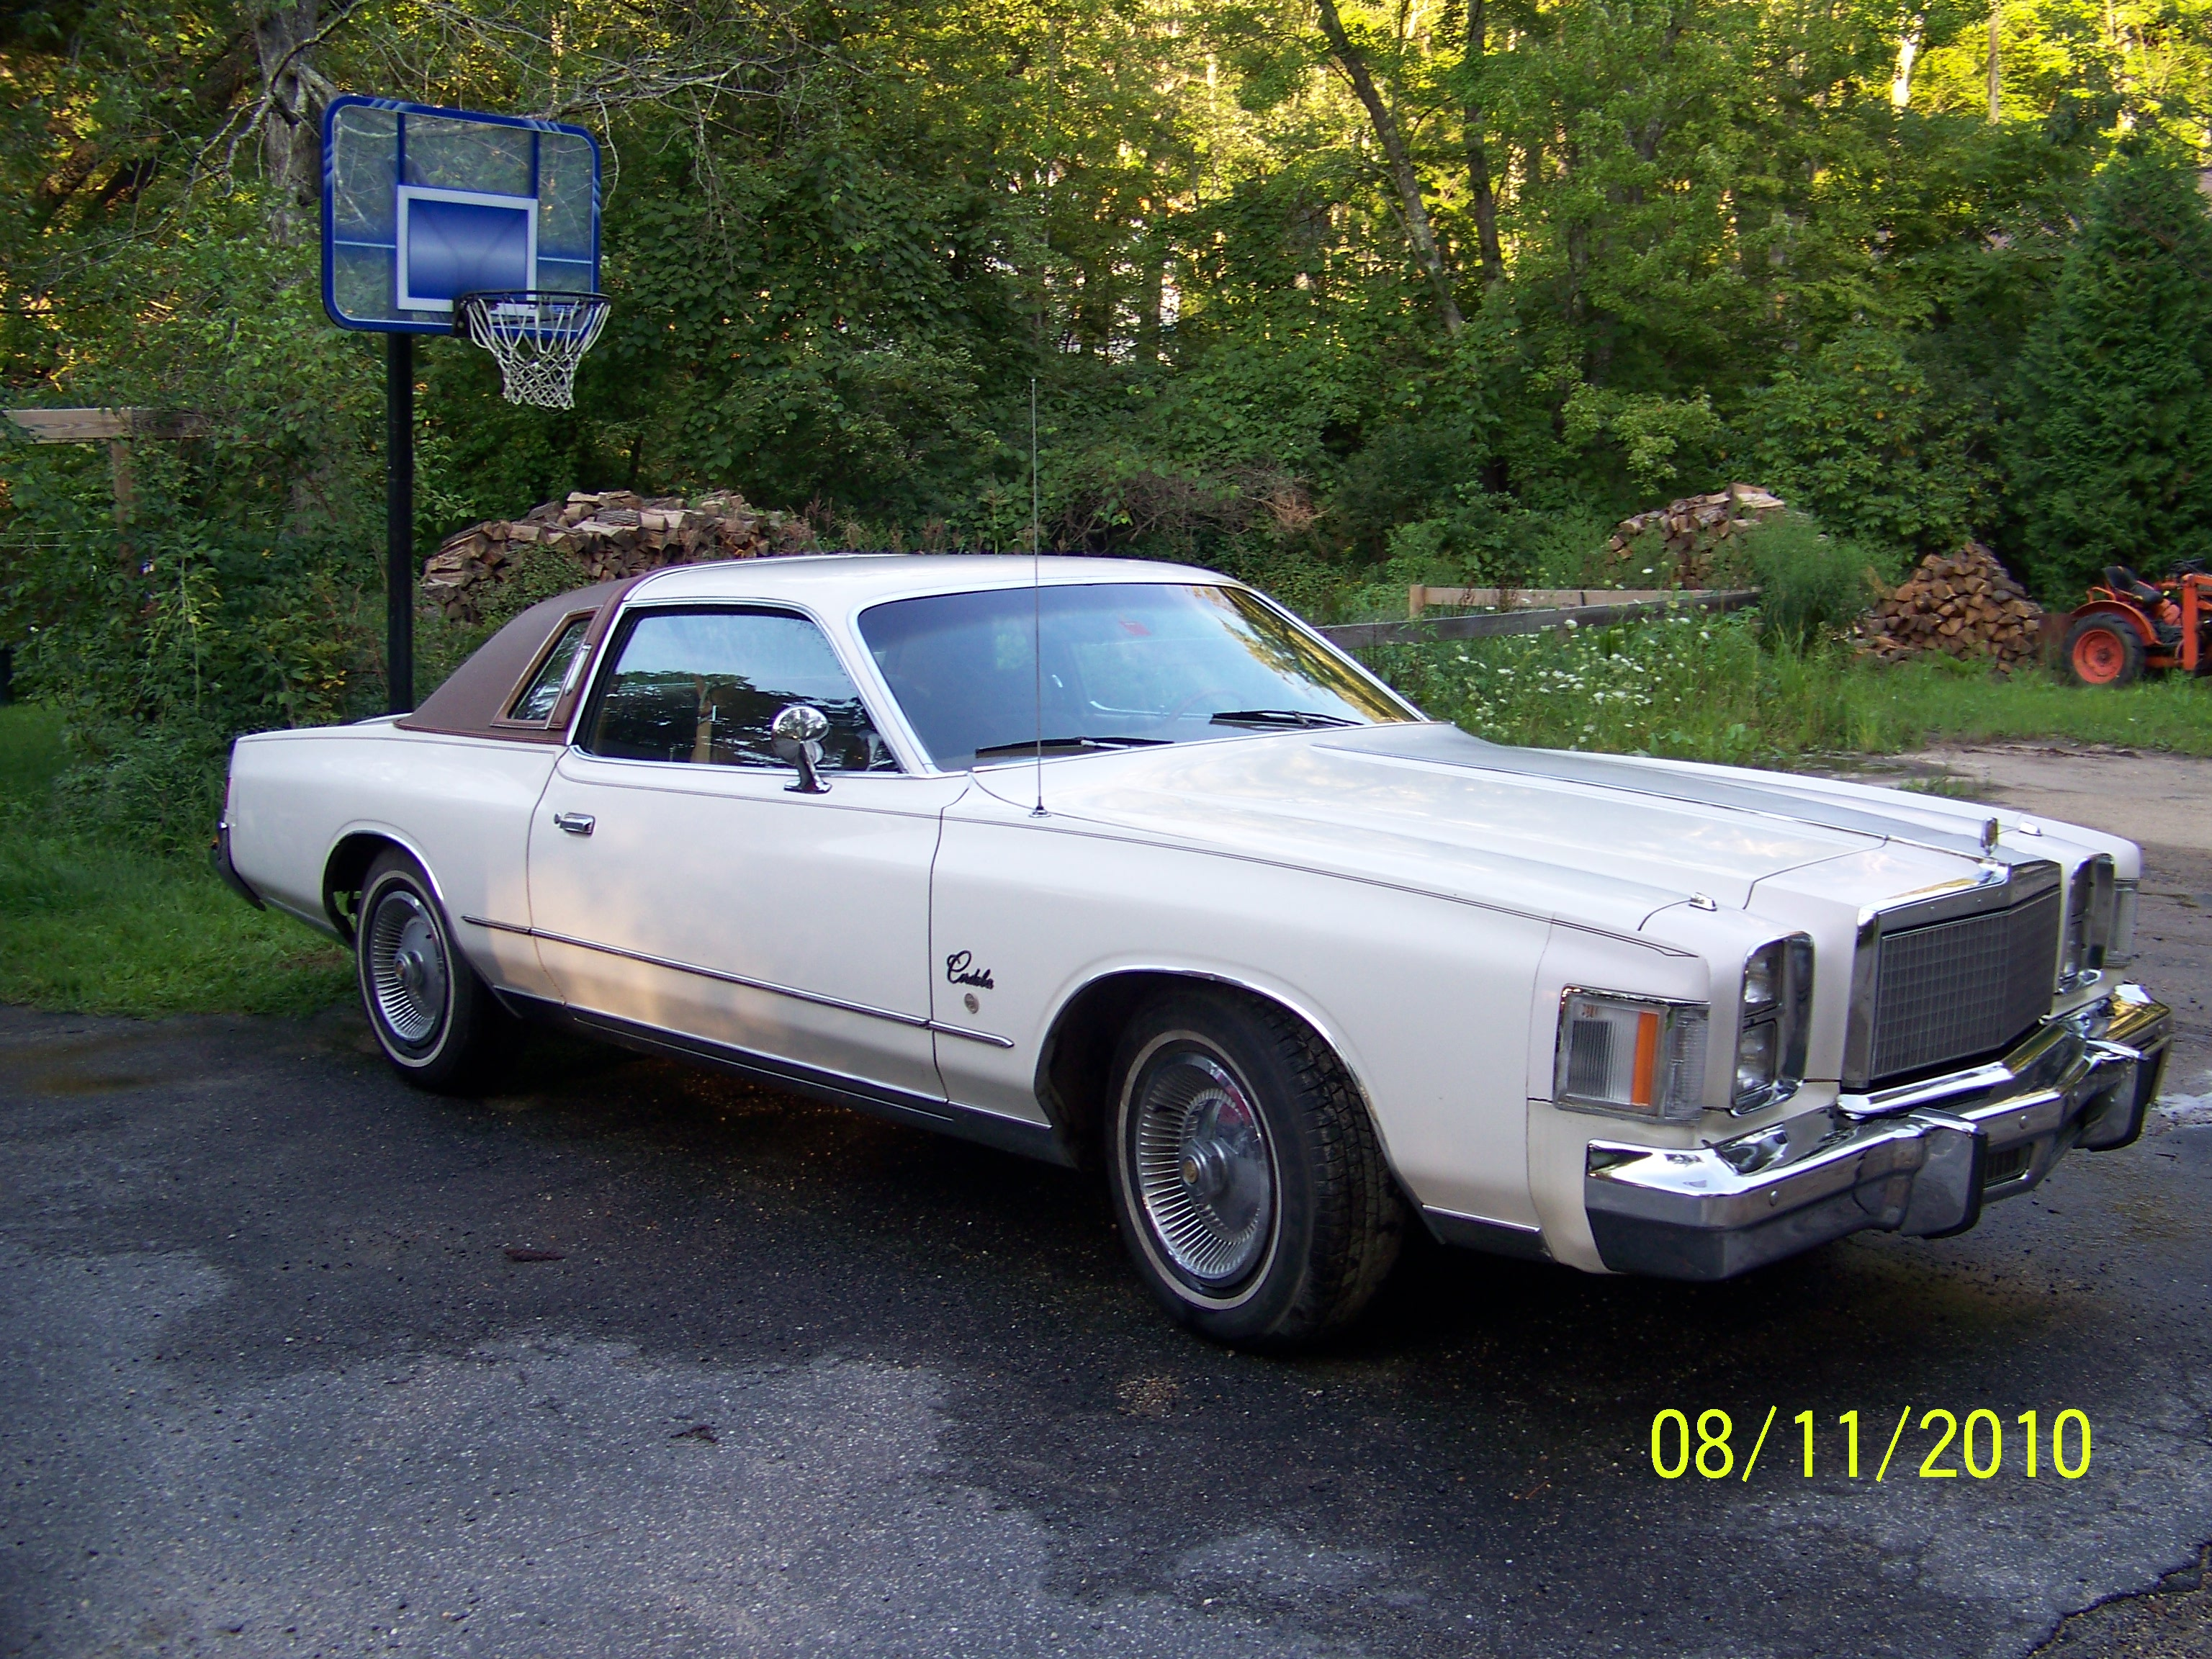 1978 Chrysler Cordoba #3